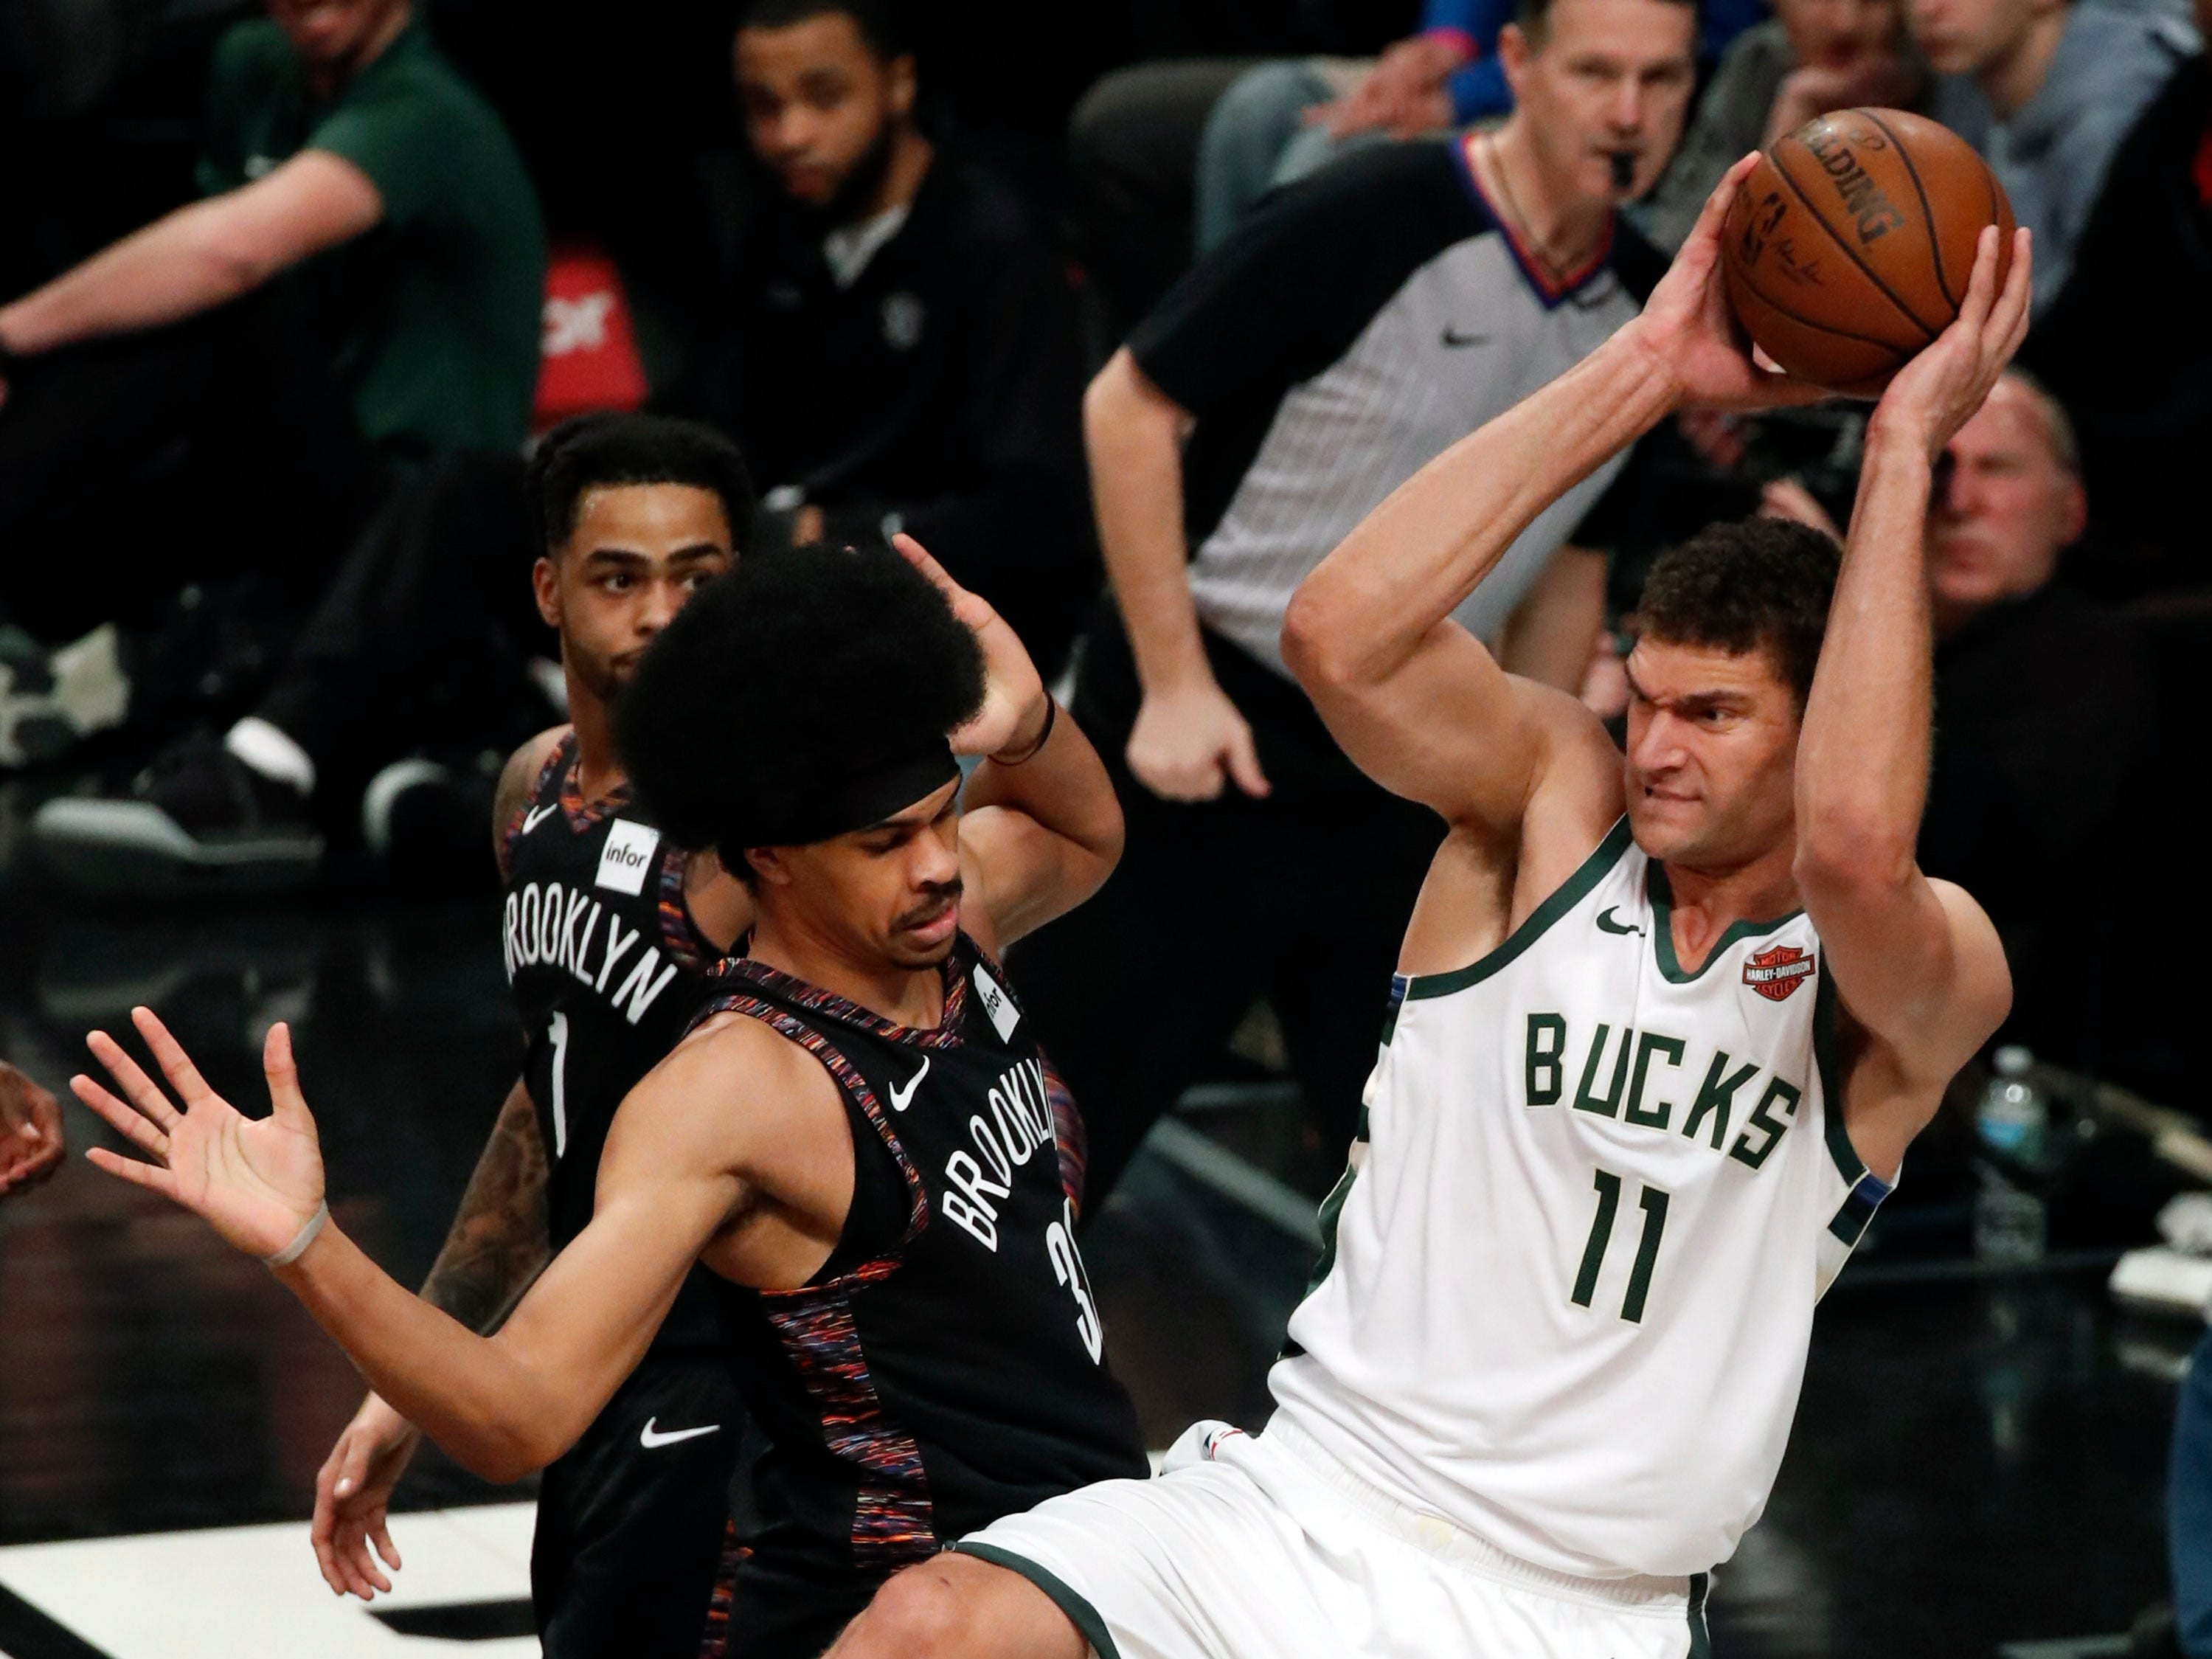 Bucks center Brook Lopez rips down a rebound in front of Nets center Jarrett Allen and gets ready to outlet to a teammate during the first half Monday.